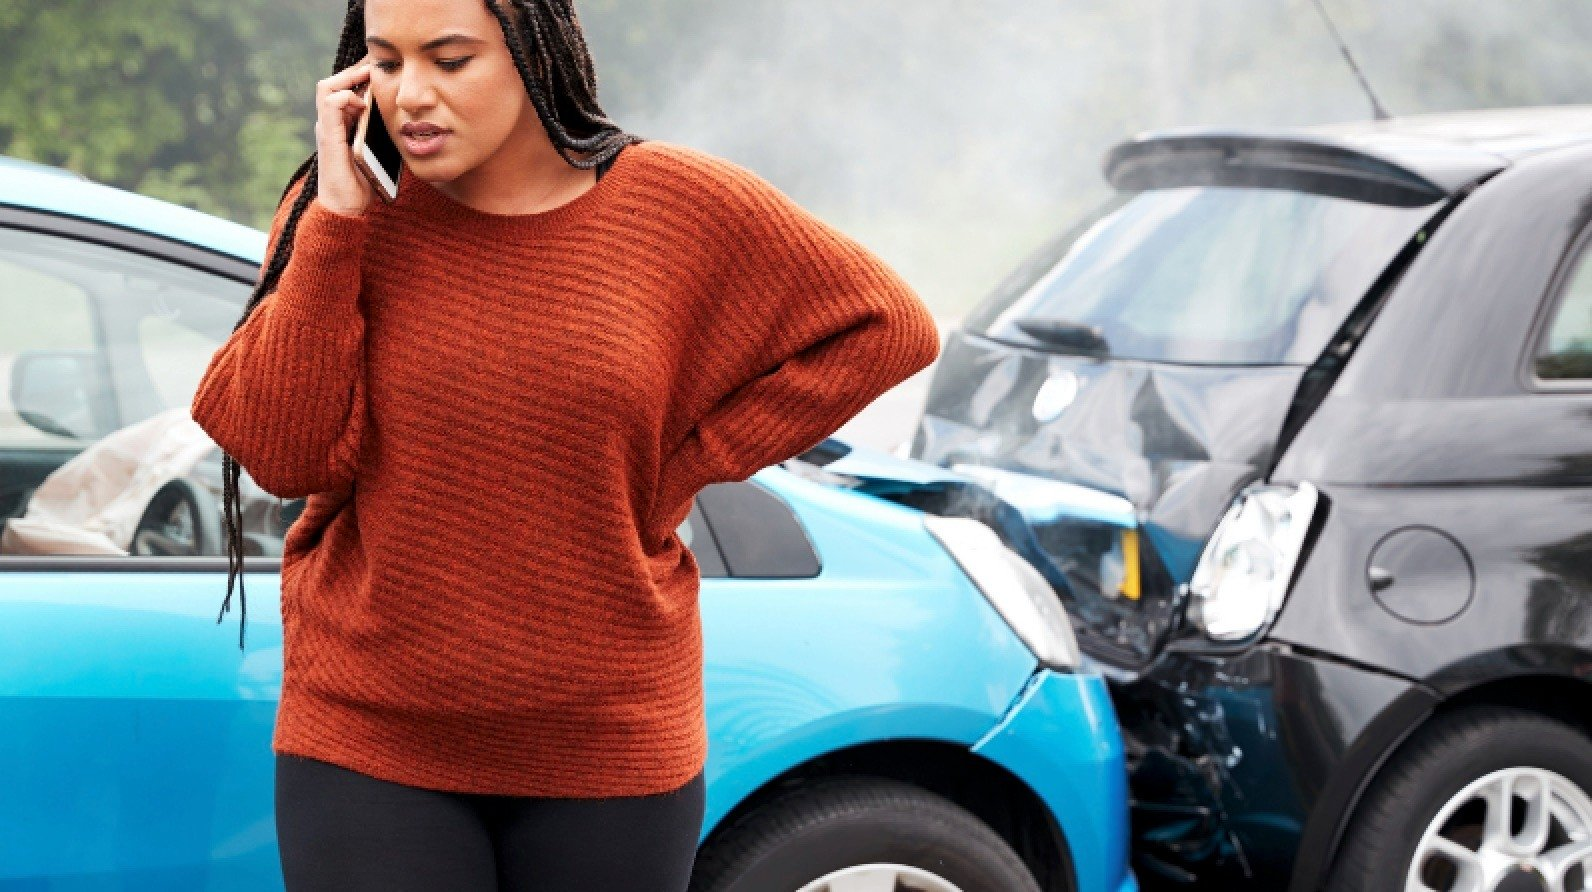 Contact your car insurance company in the event of an accident